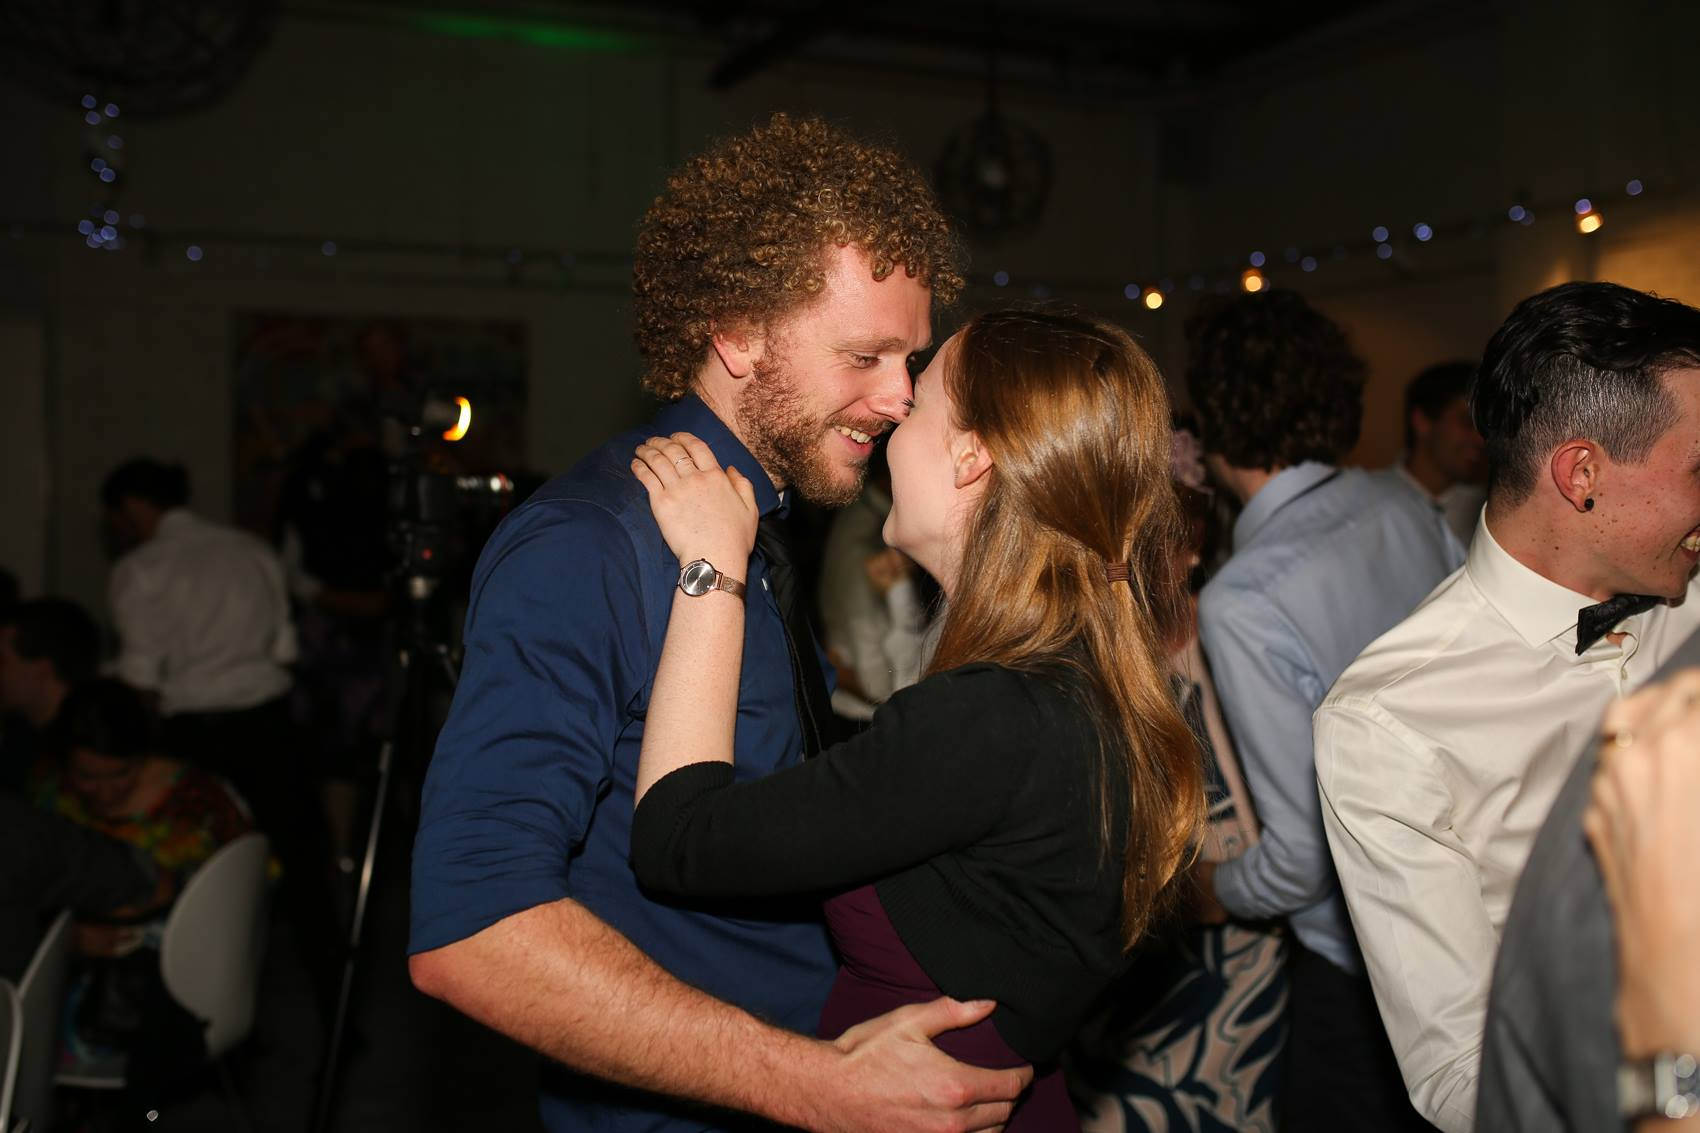 Zooey: Finally dragged Charlie onto the dance floor! Love having a good boogie with this man (despite how unco we can both be at times!)